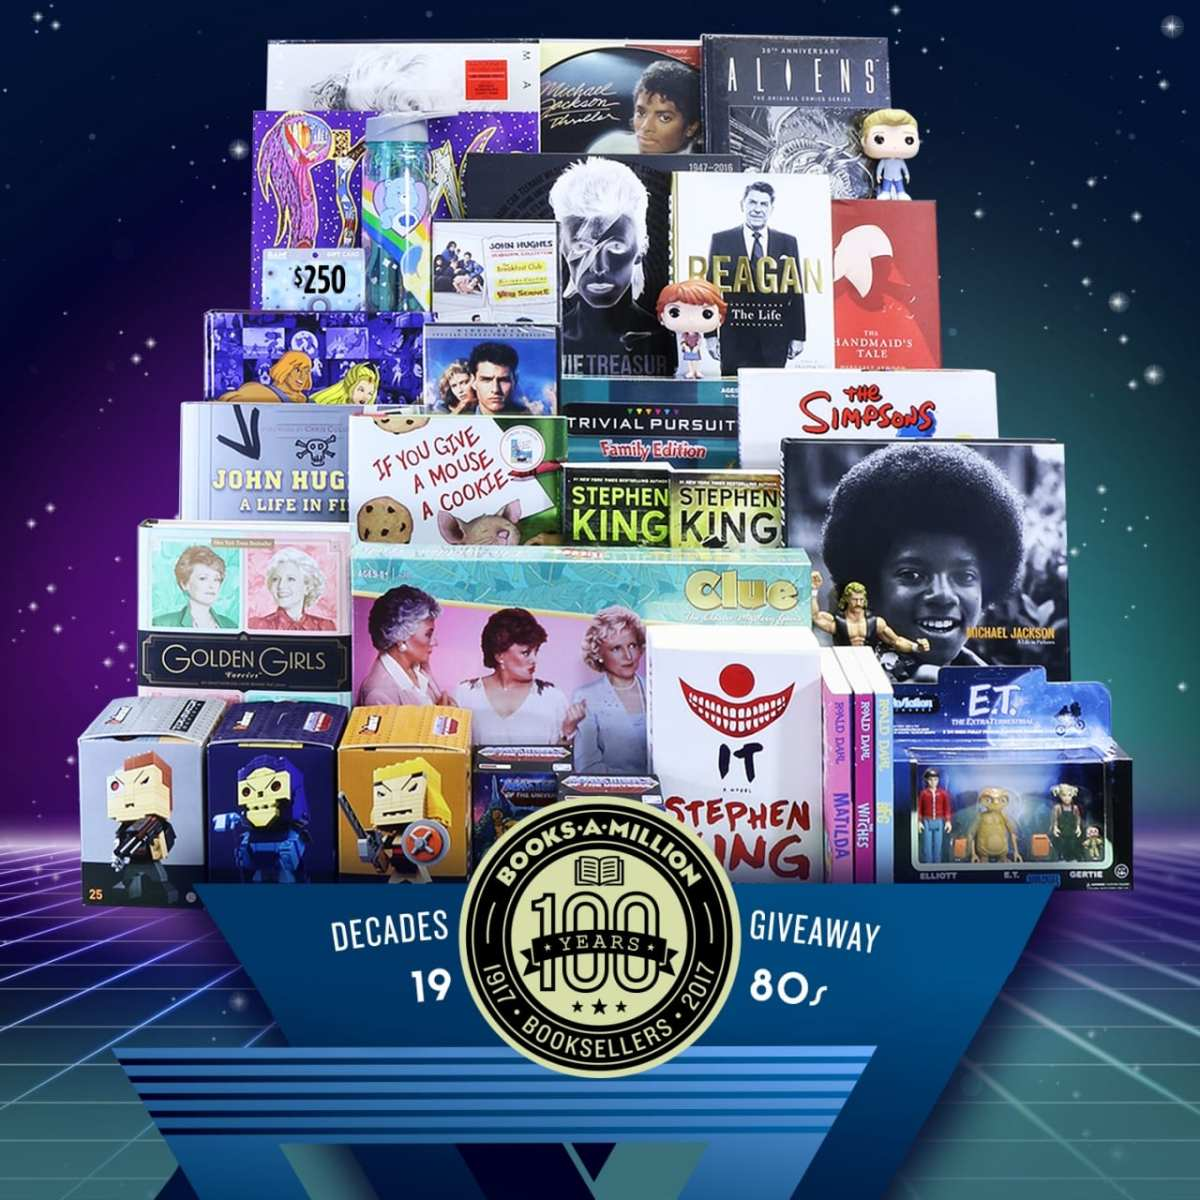 Enter by Sept. 24th to win a $1000 Books-A-Million '80's Decades Giveaway